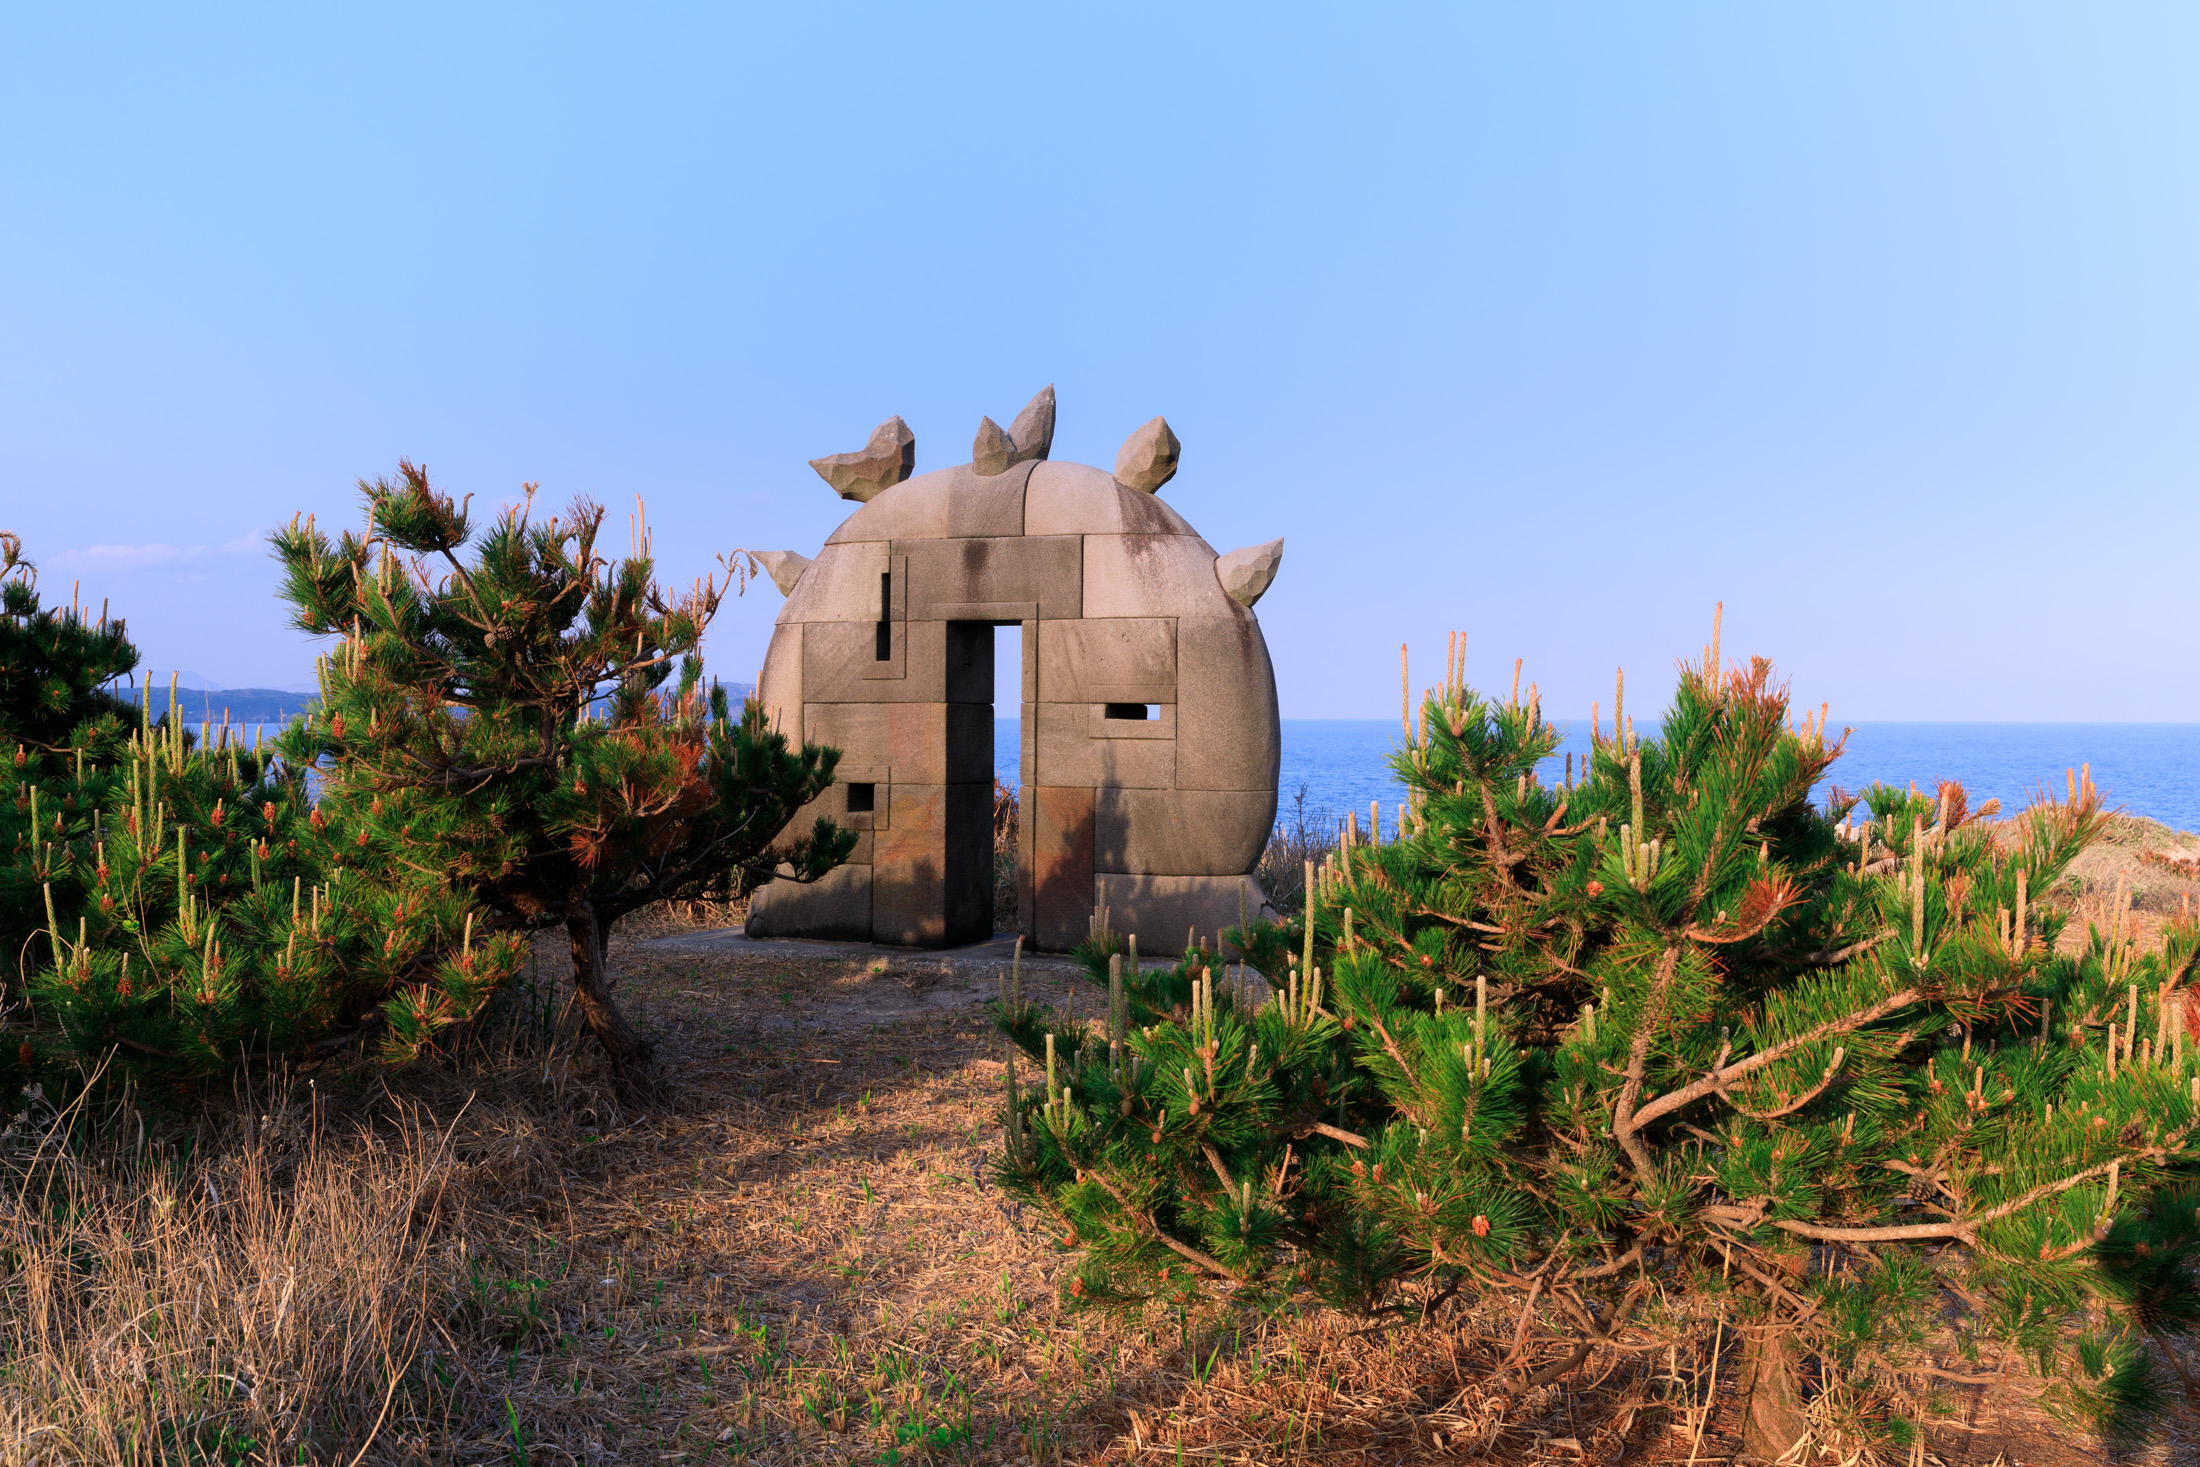 atmosphere, island, niijima, special, statue, sunset, thing